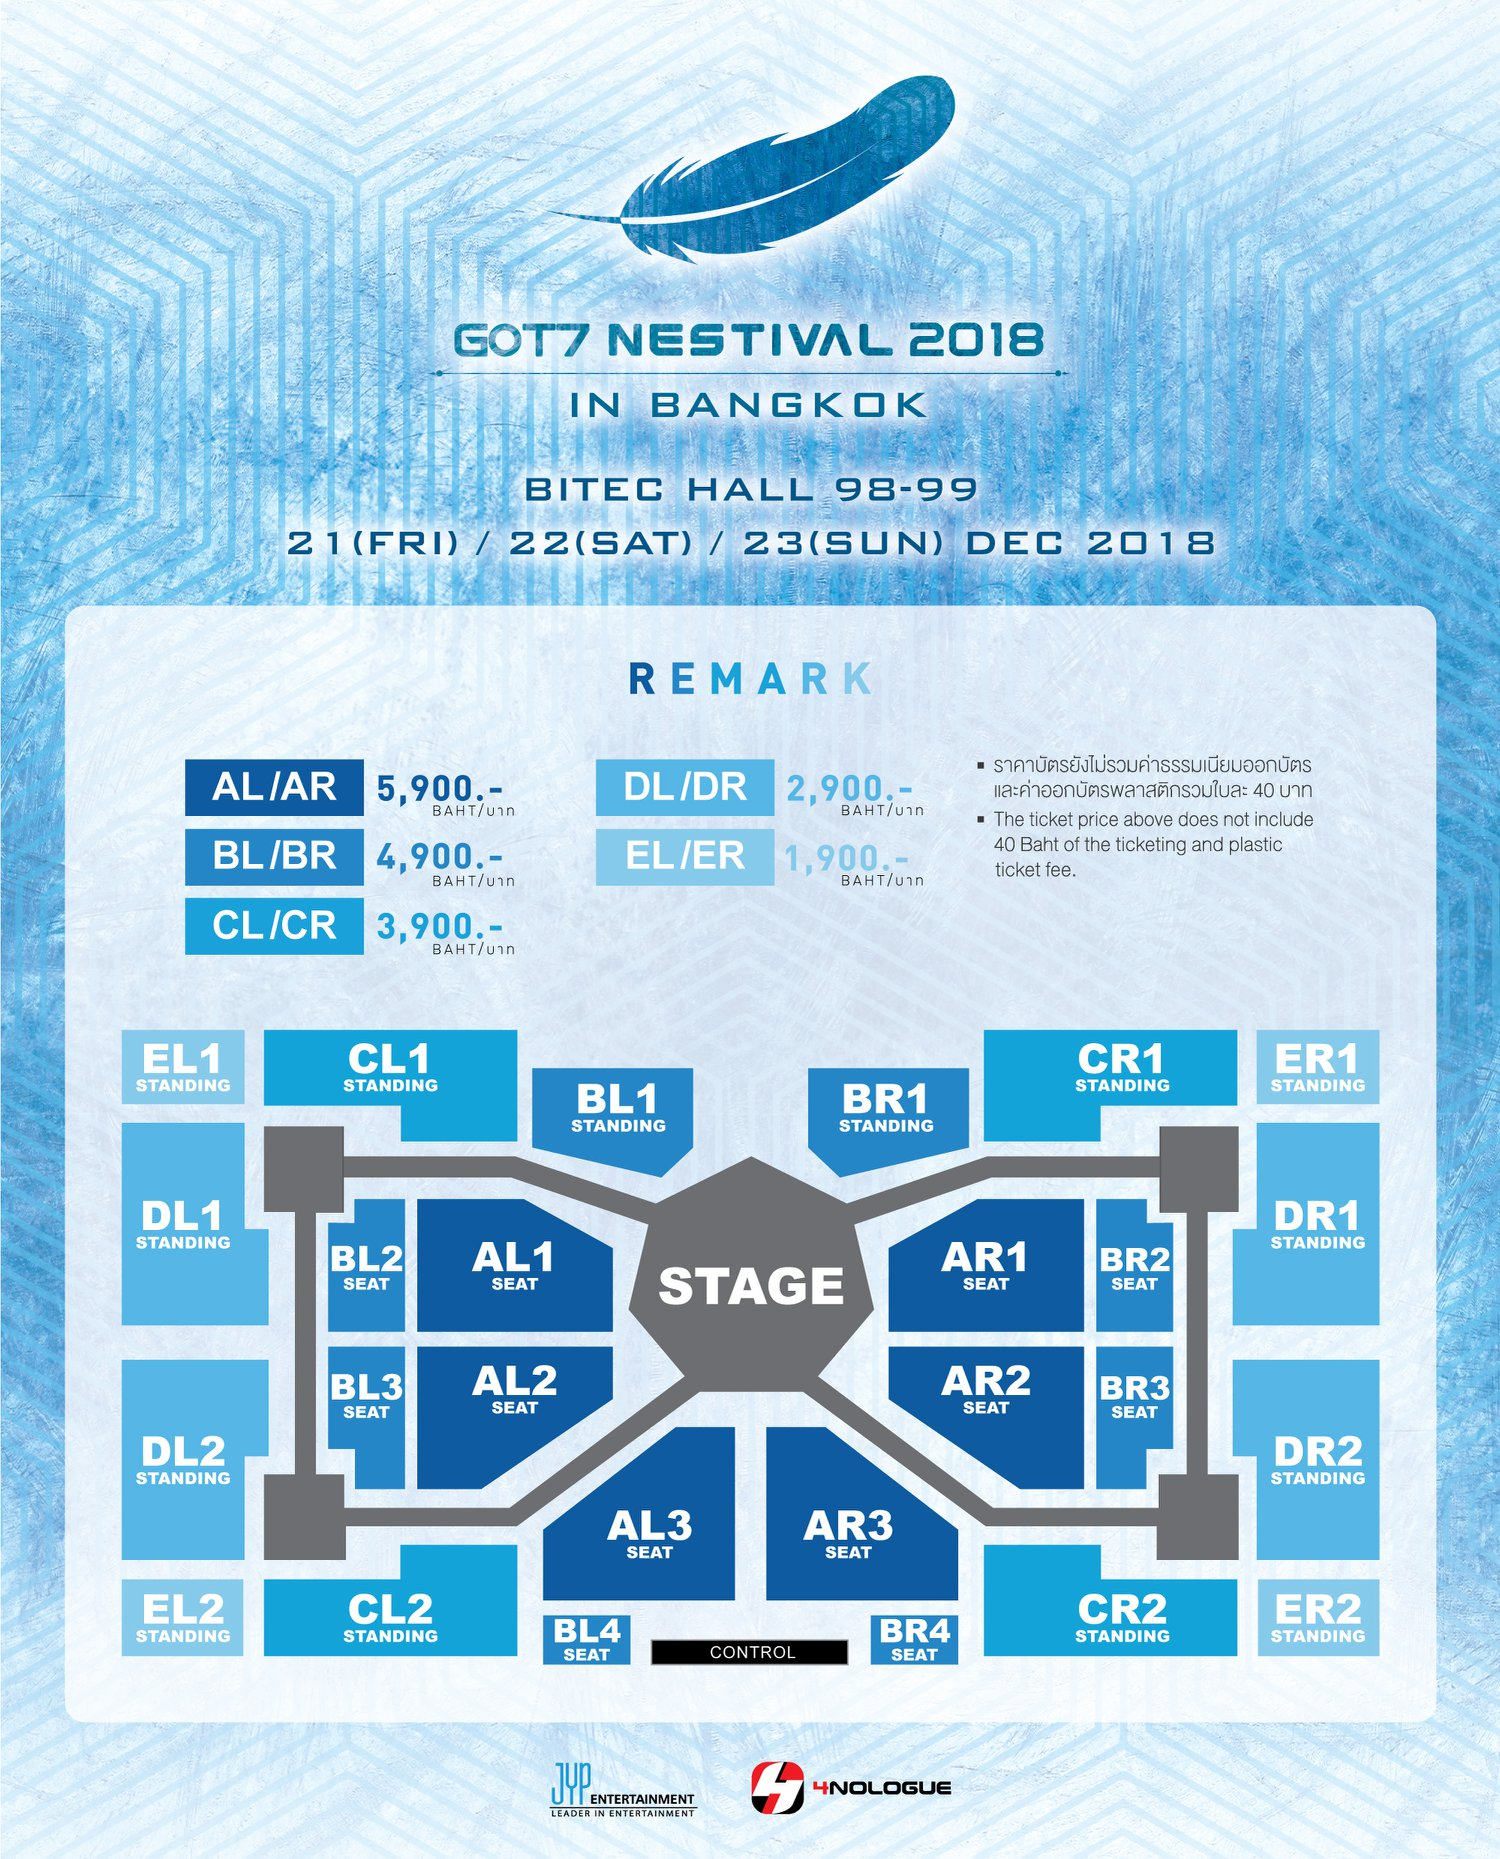 GOT7 NESTIVAL 2018 IN BANGKOK 02